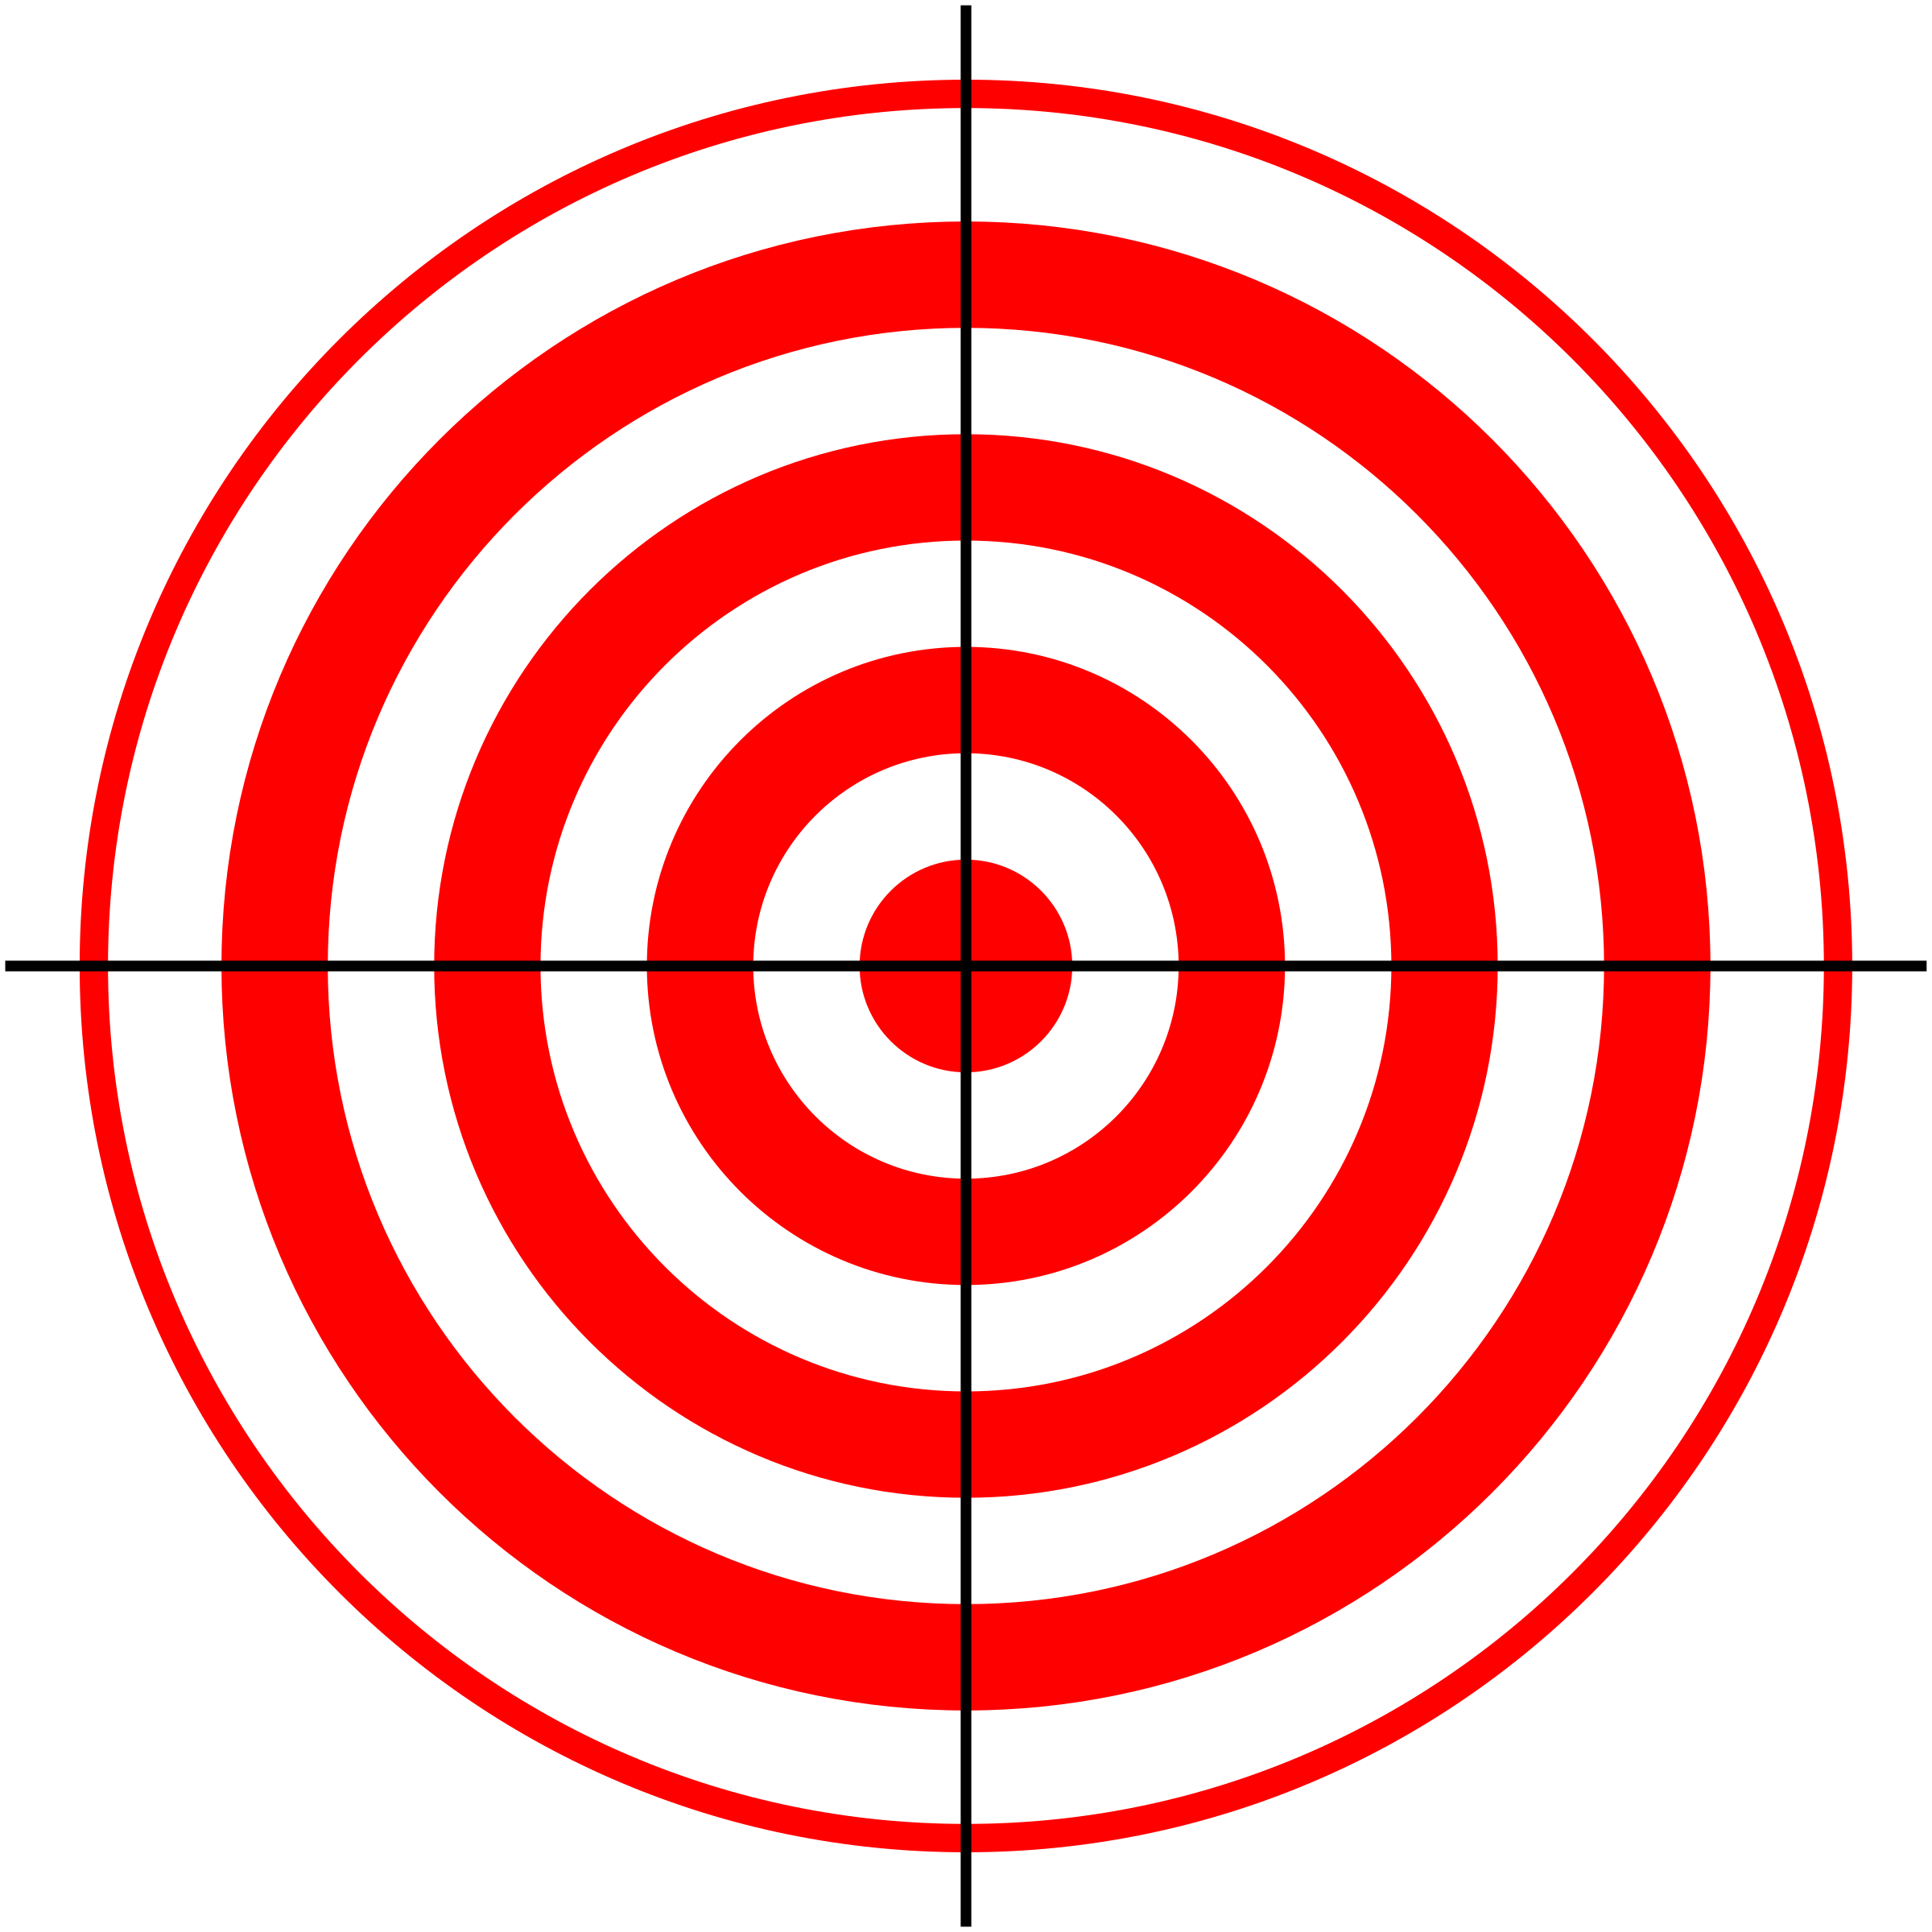 Target png library library Target PNG Transparent Images | PNG All png library library